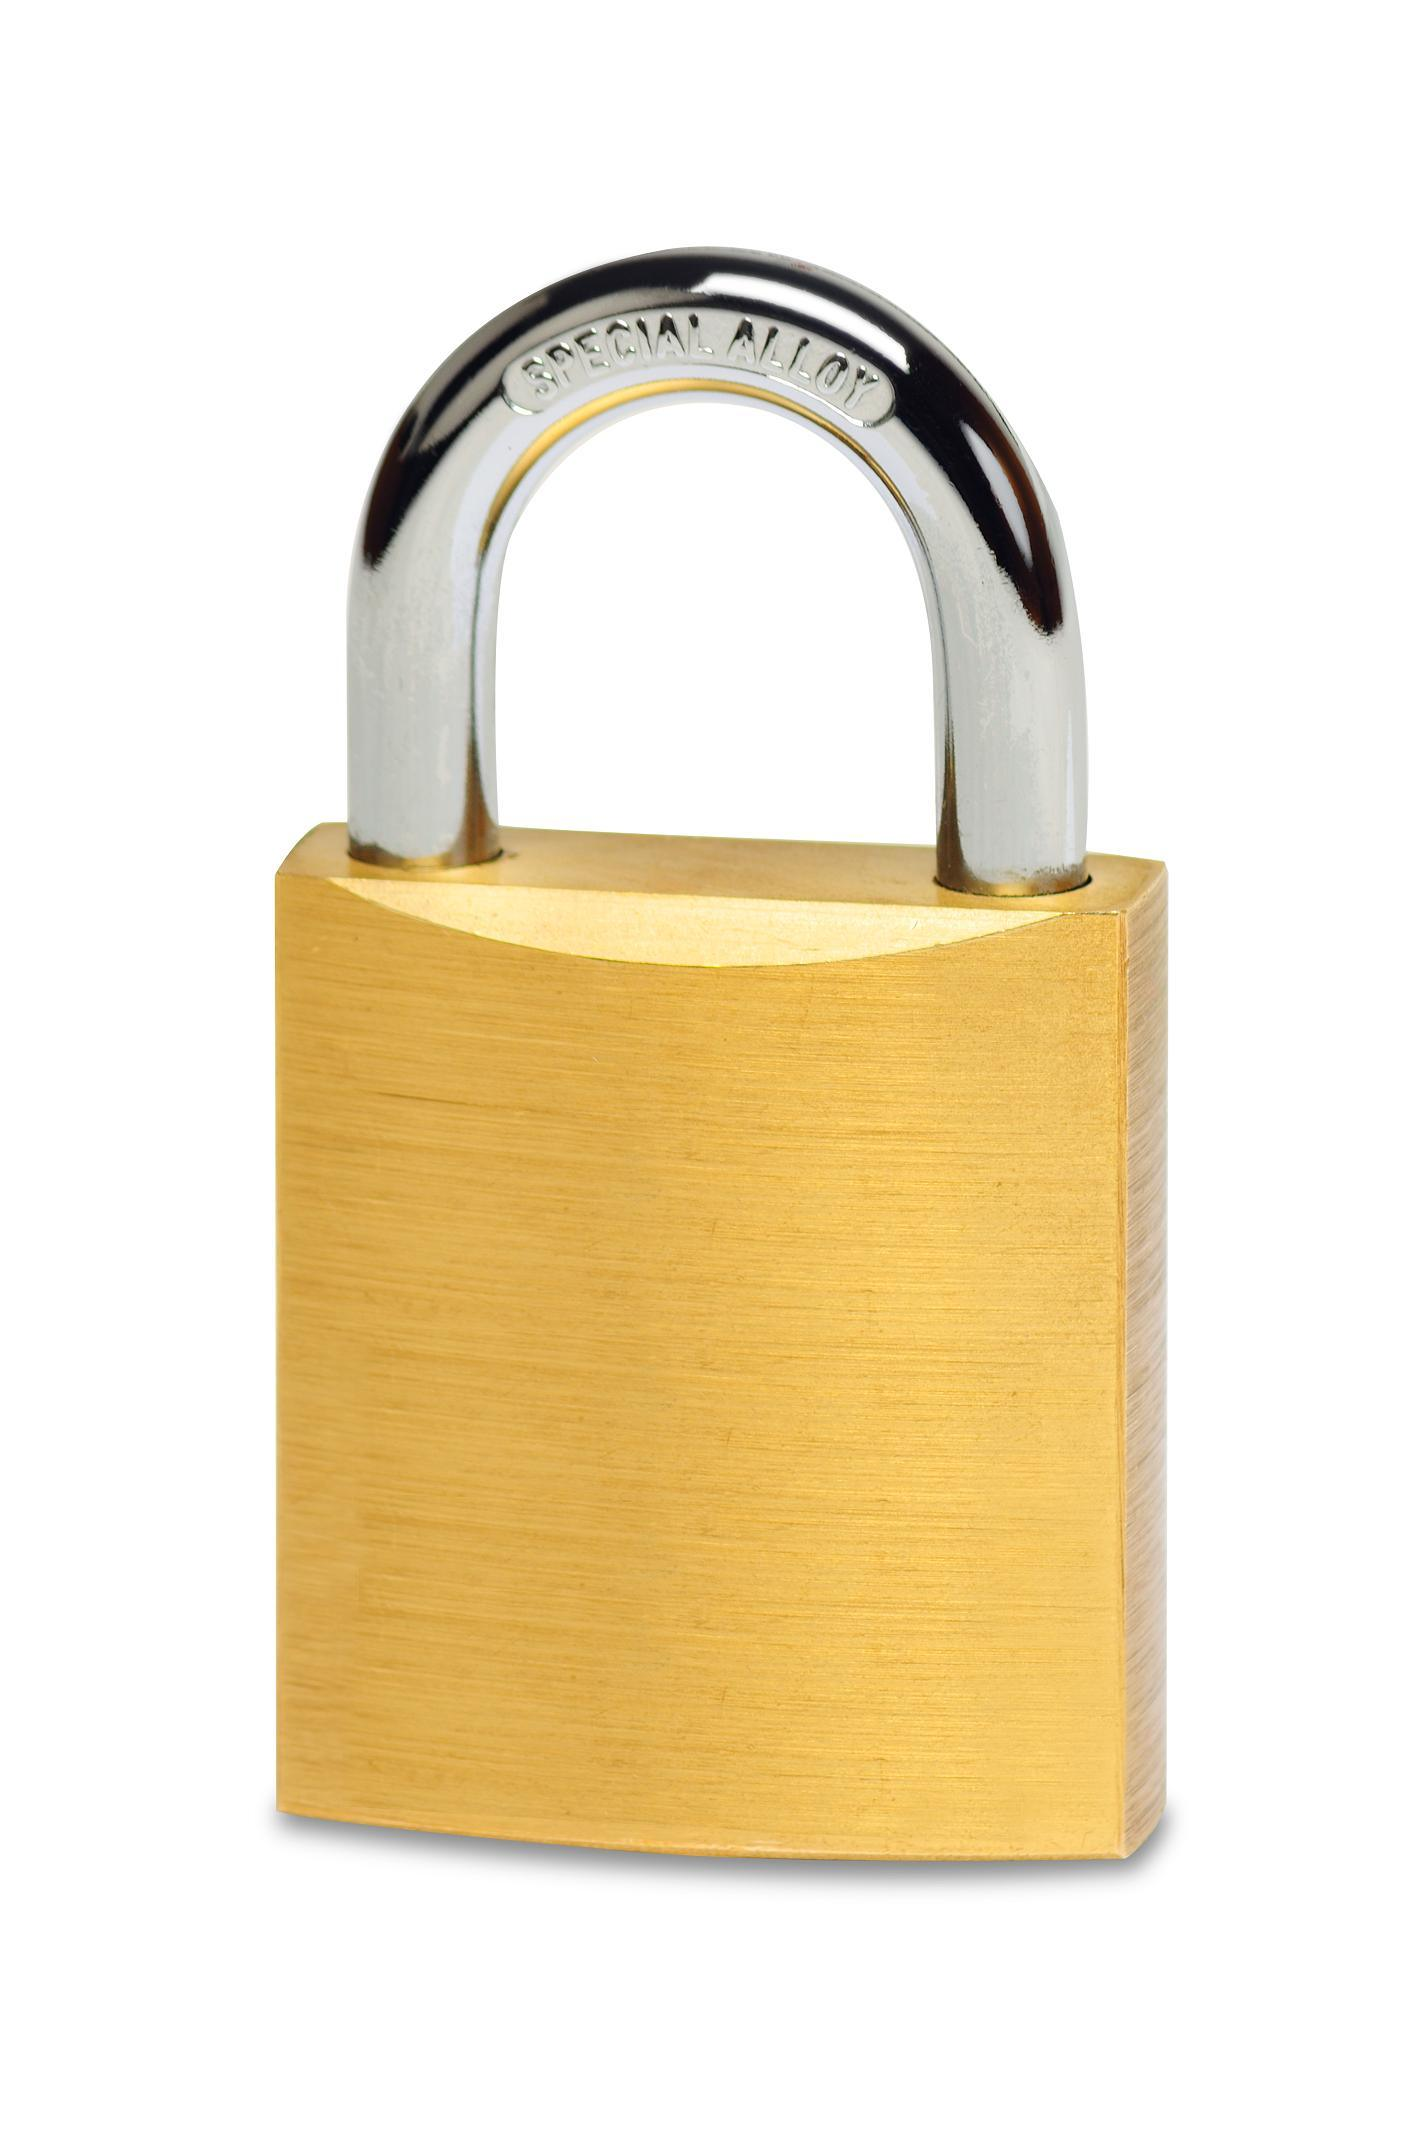 Electronic Padlock for Industrial Application